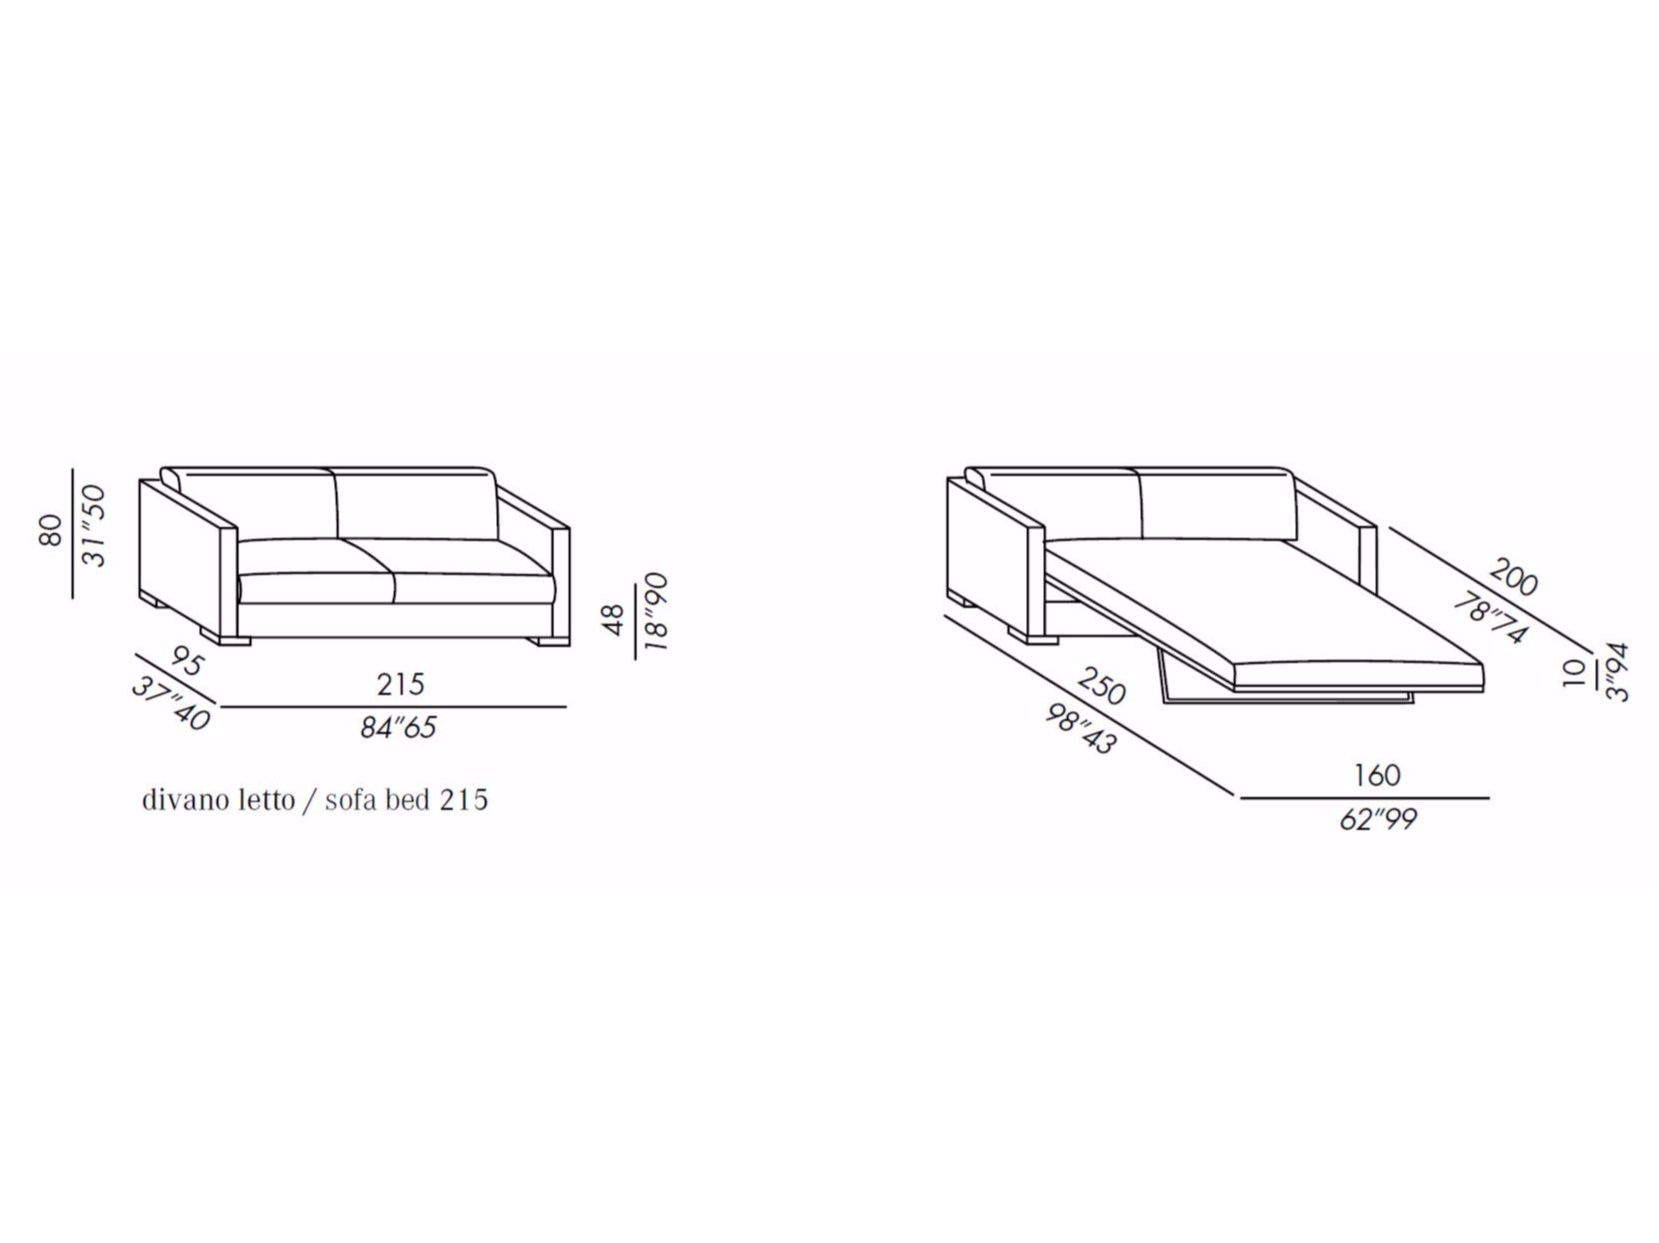 Dimension canape lit maison design wibliacom for Sofa bed dimensions unfolded